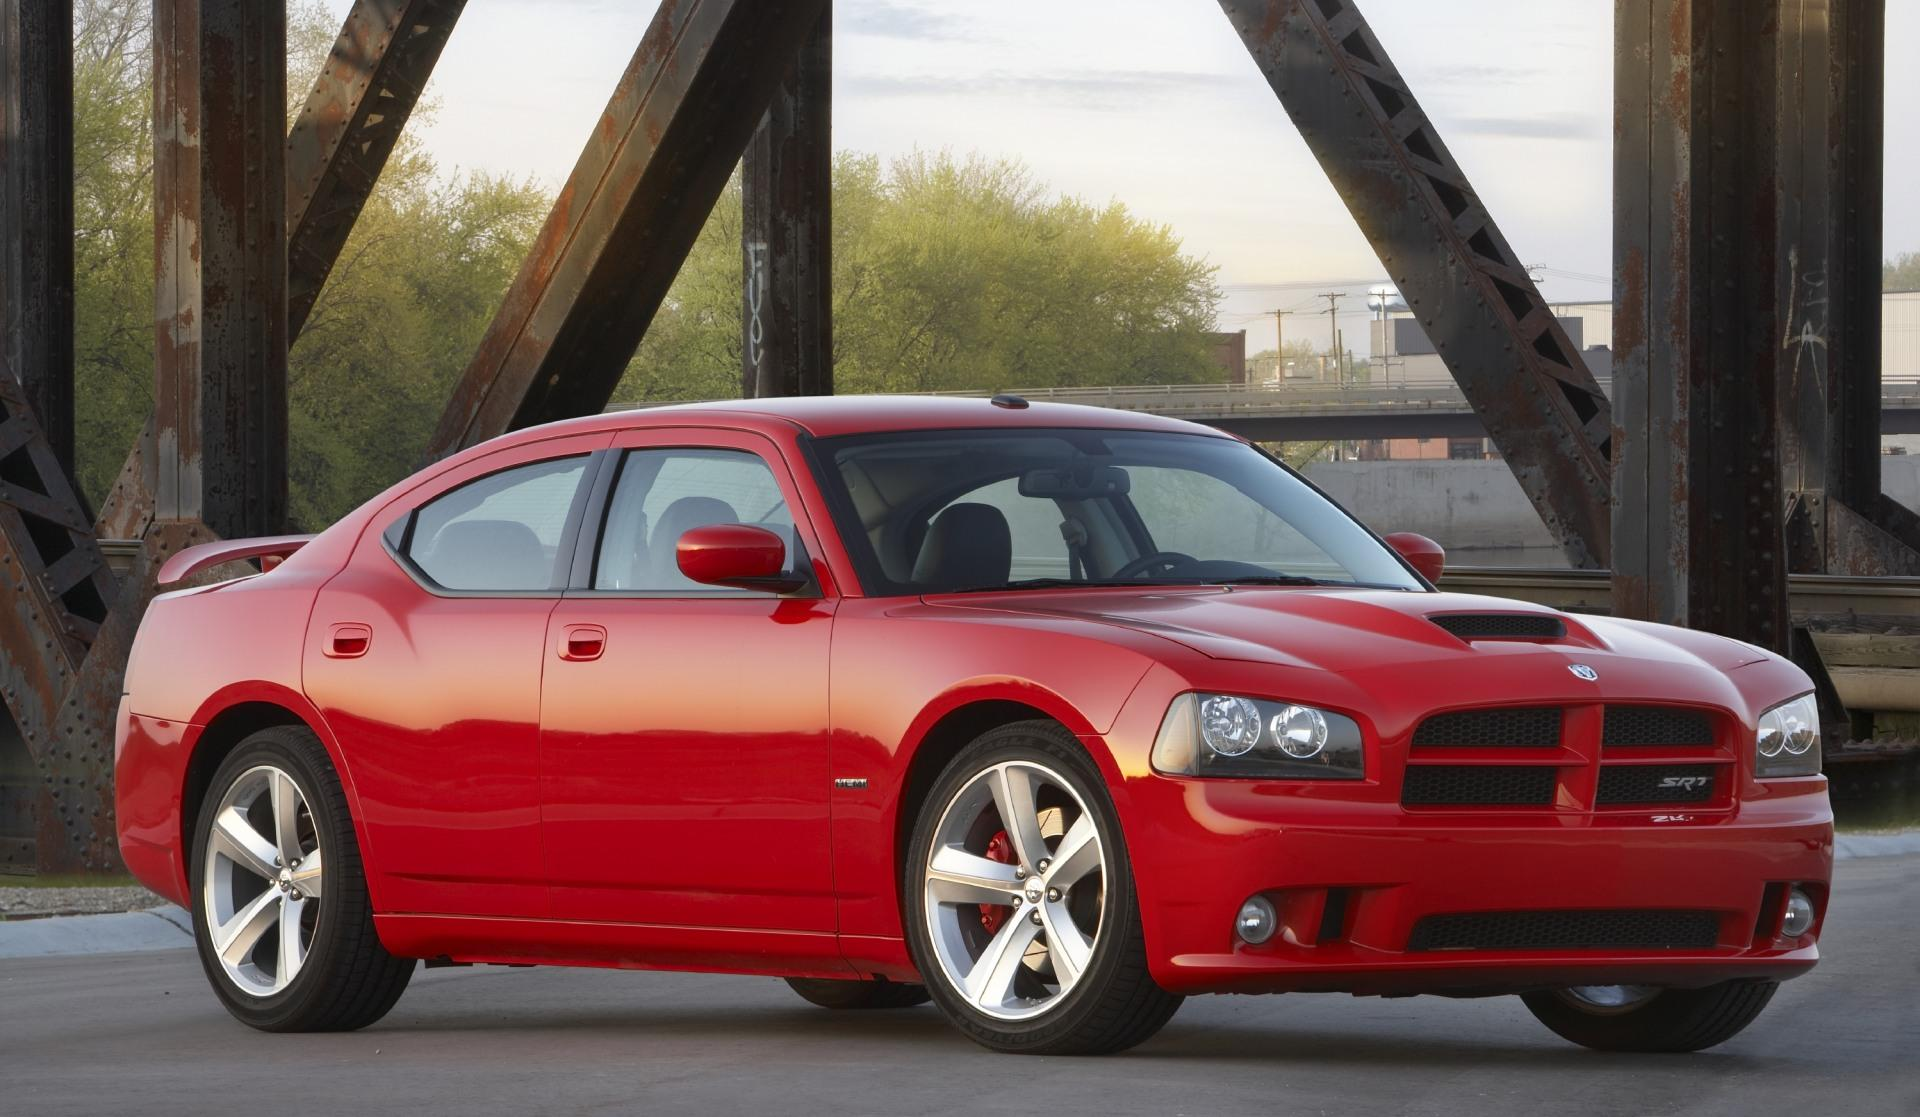 2010 dodge charger srt8. Black Bedroom Furniture Sets. Home Design Ideas